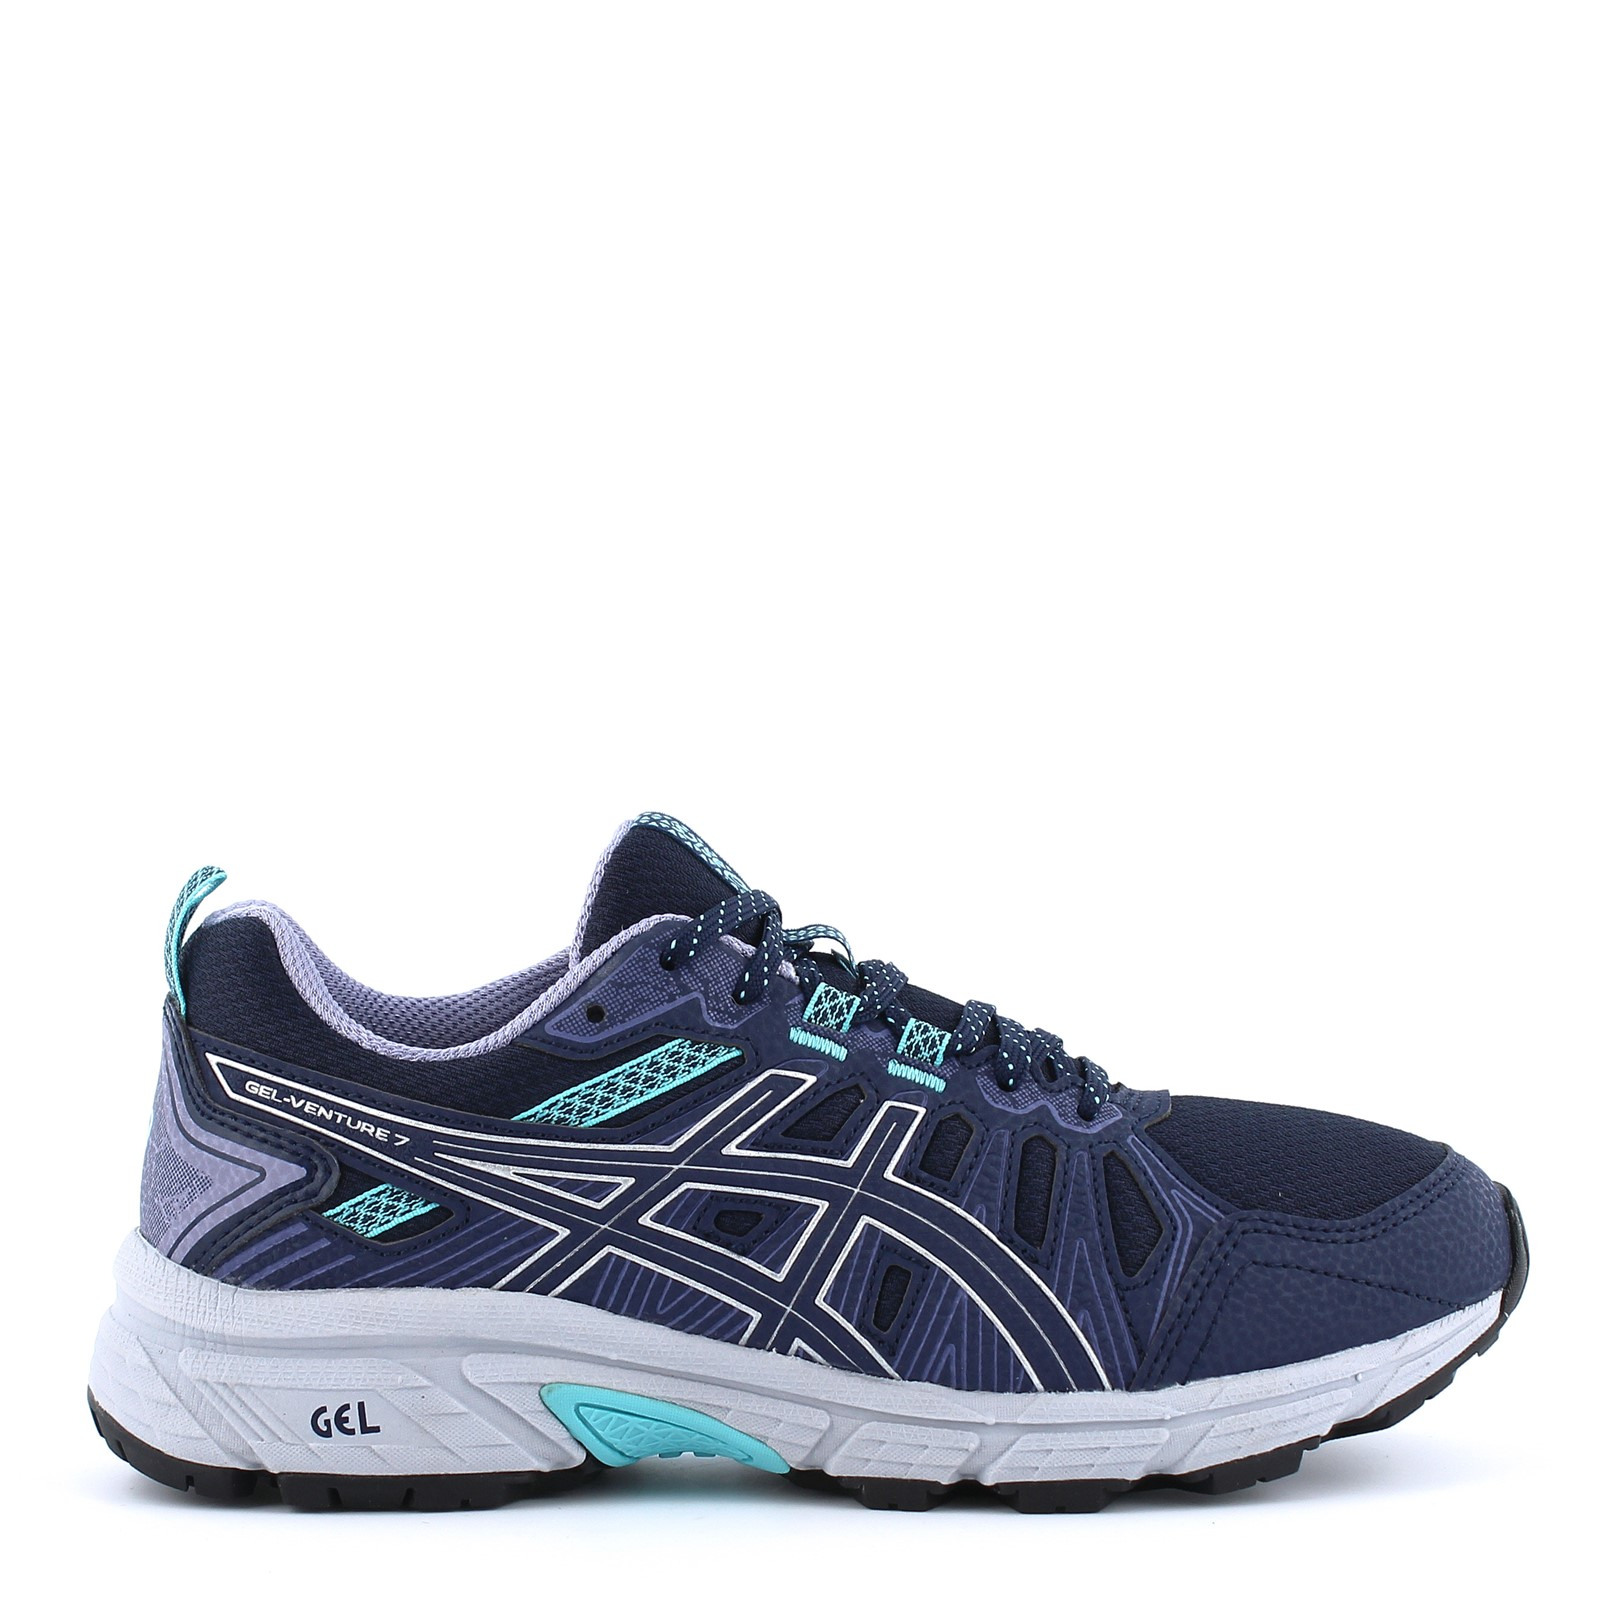 Women's Asics, Gel Venture 7 Trail Sneakers